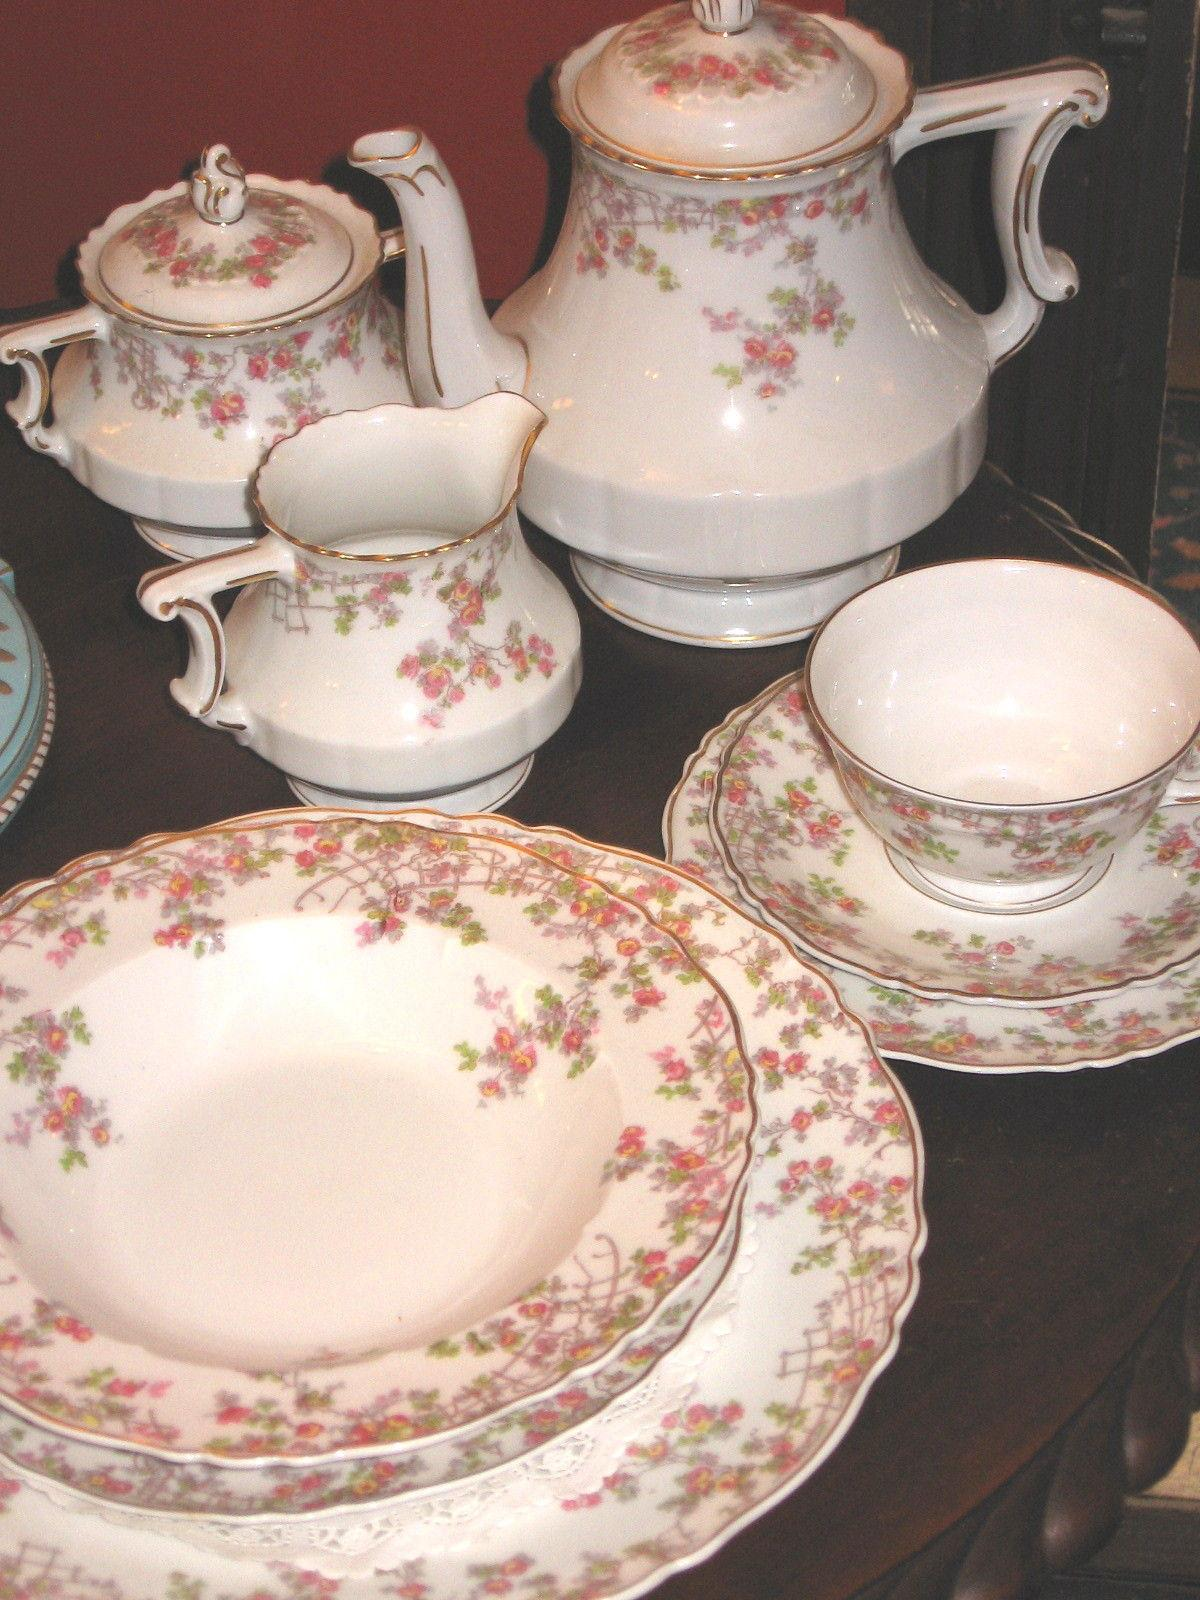 ANTIQUES — Are You Sure You Want to Sell That Limoges China